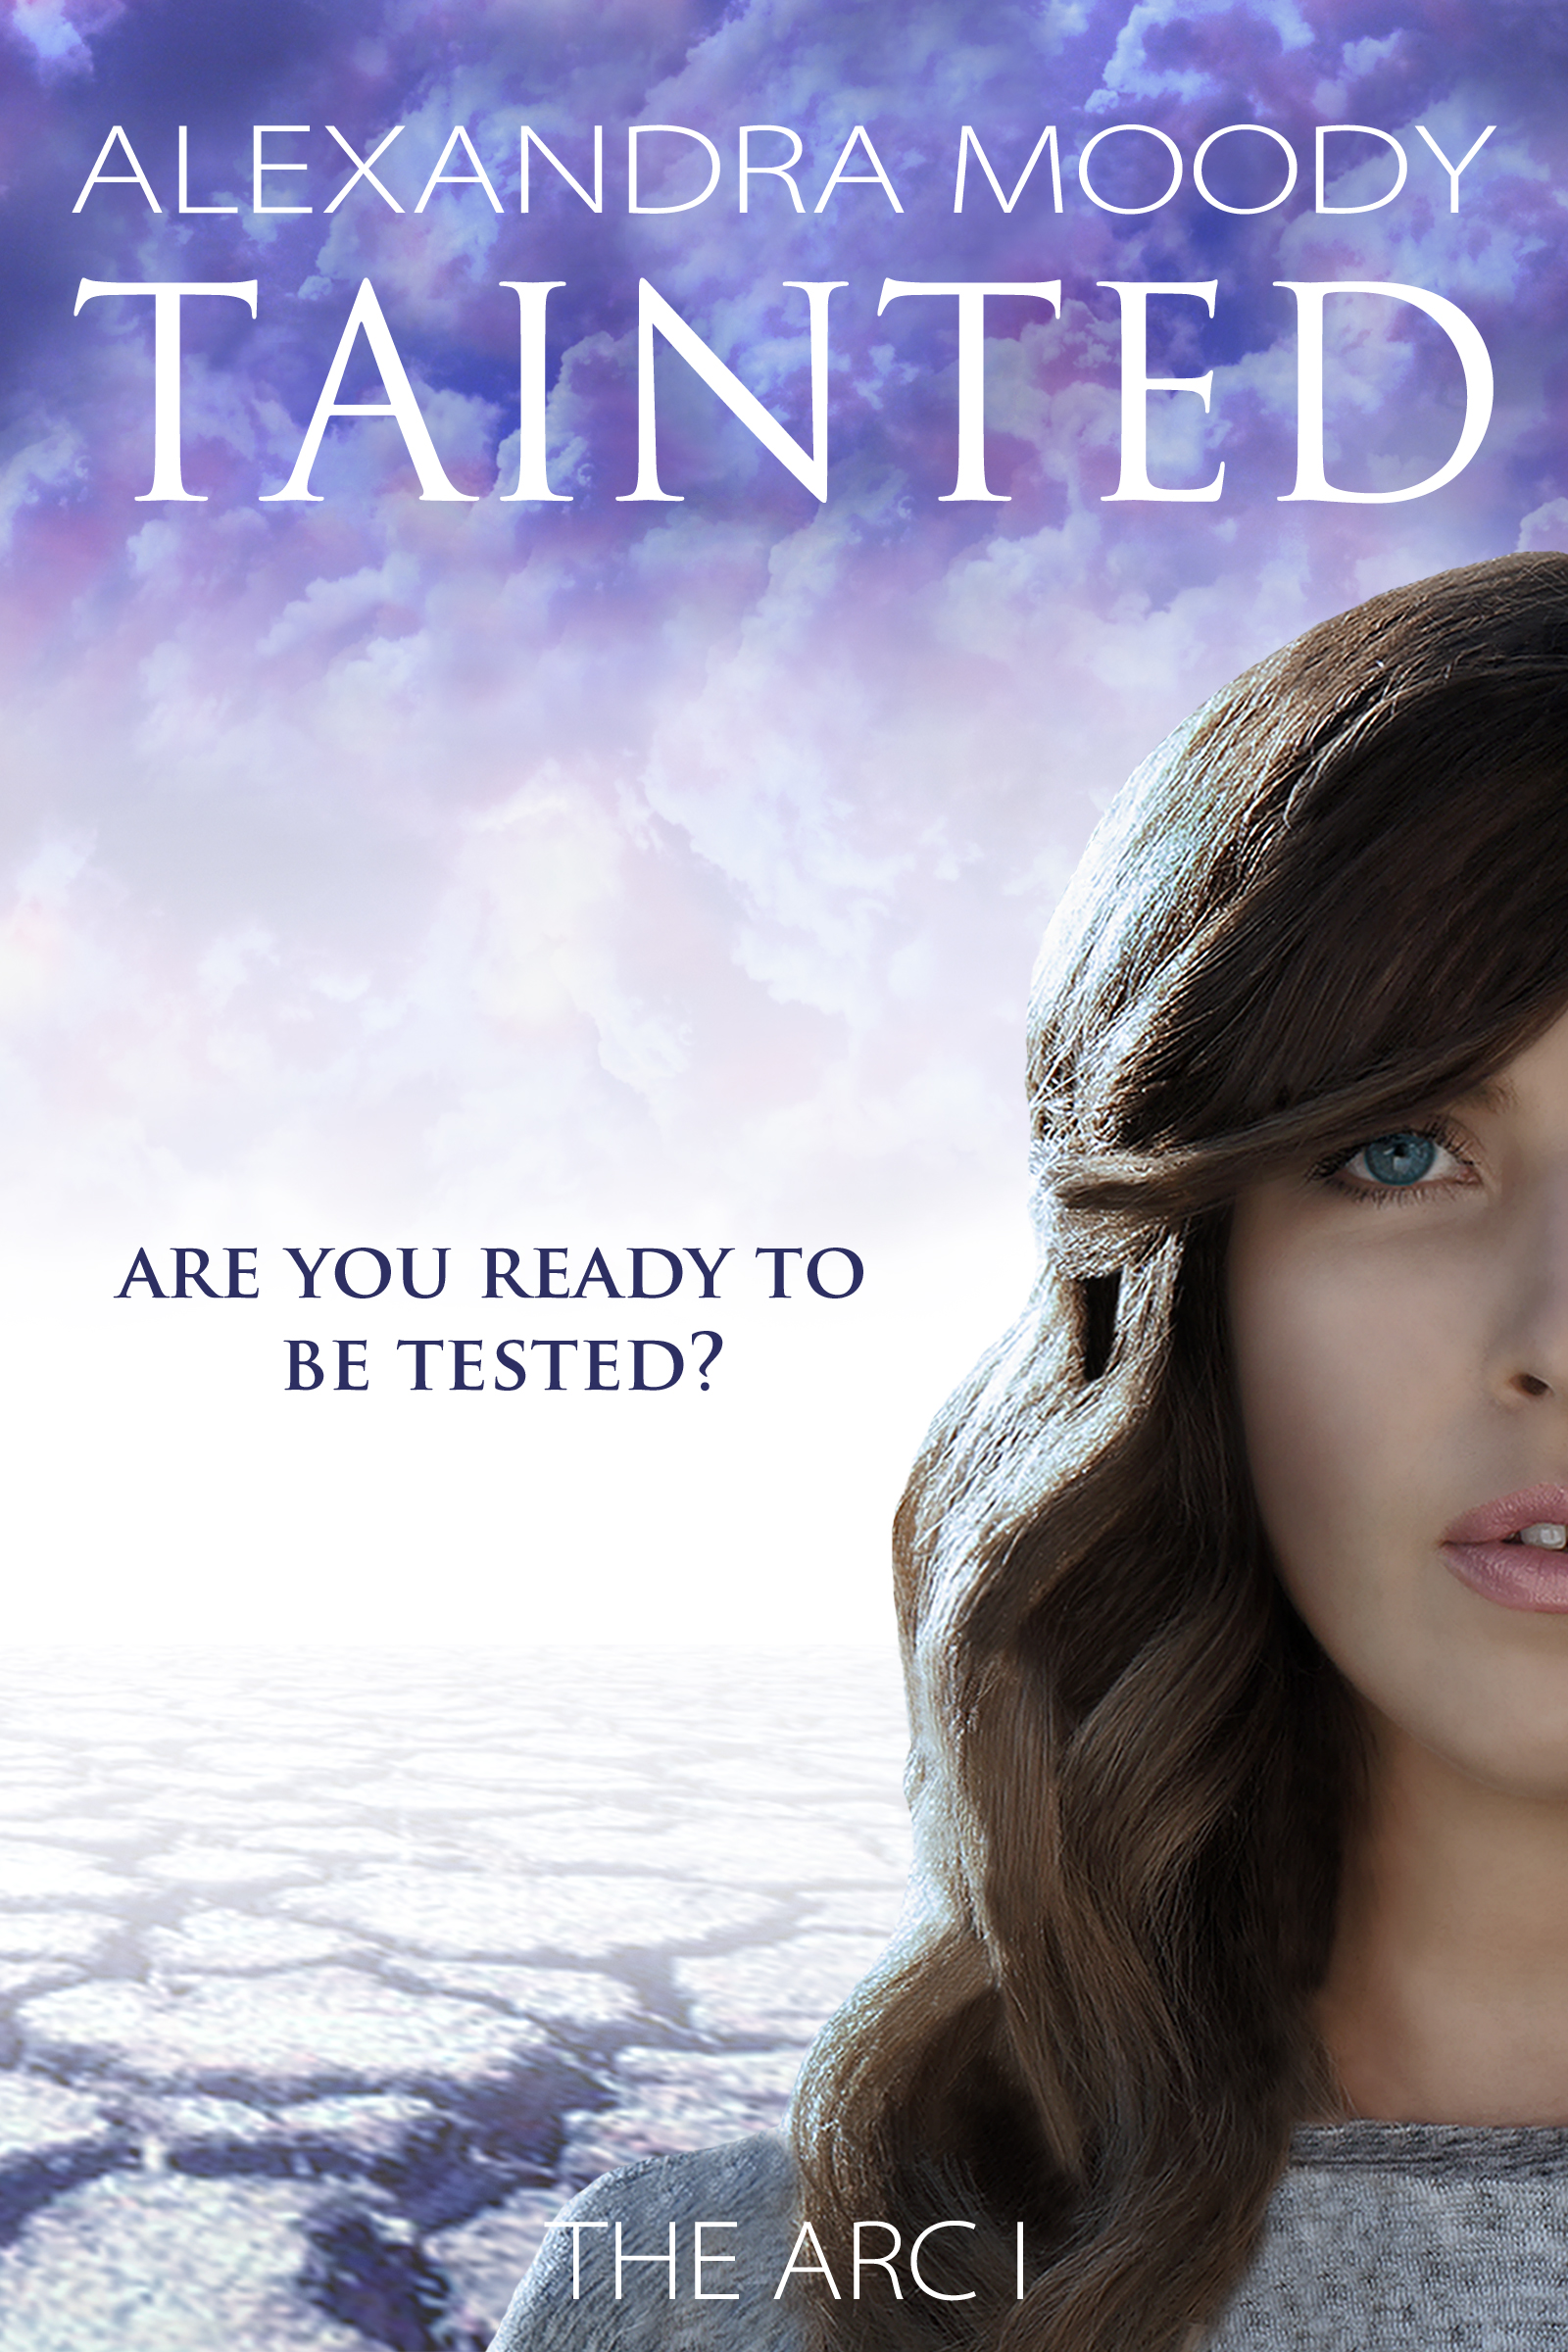 Tainted, Series: The Arc , Book 1, By Alexandra Moody, Free